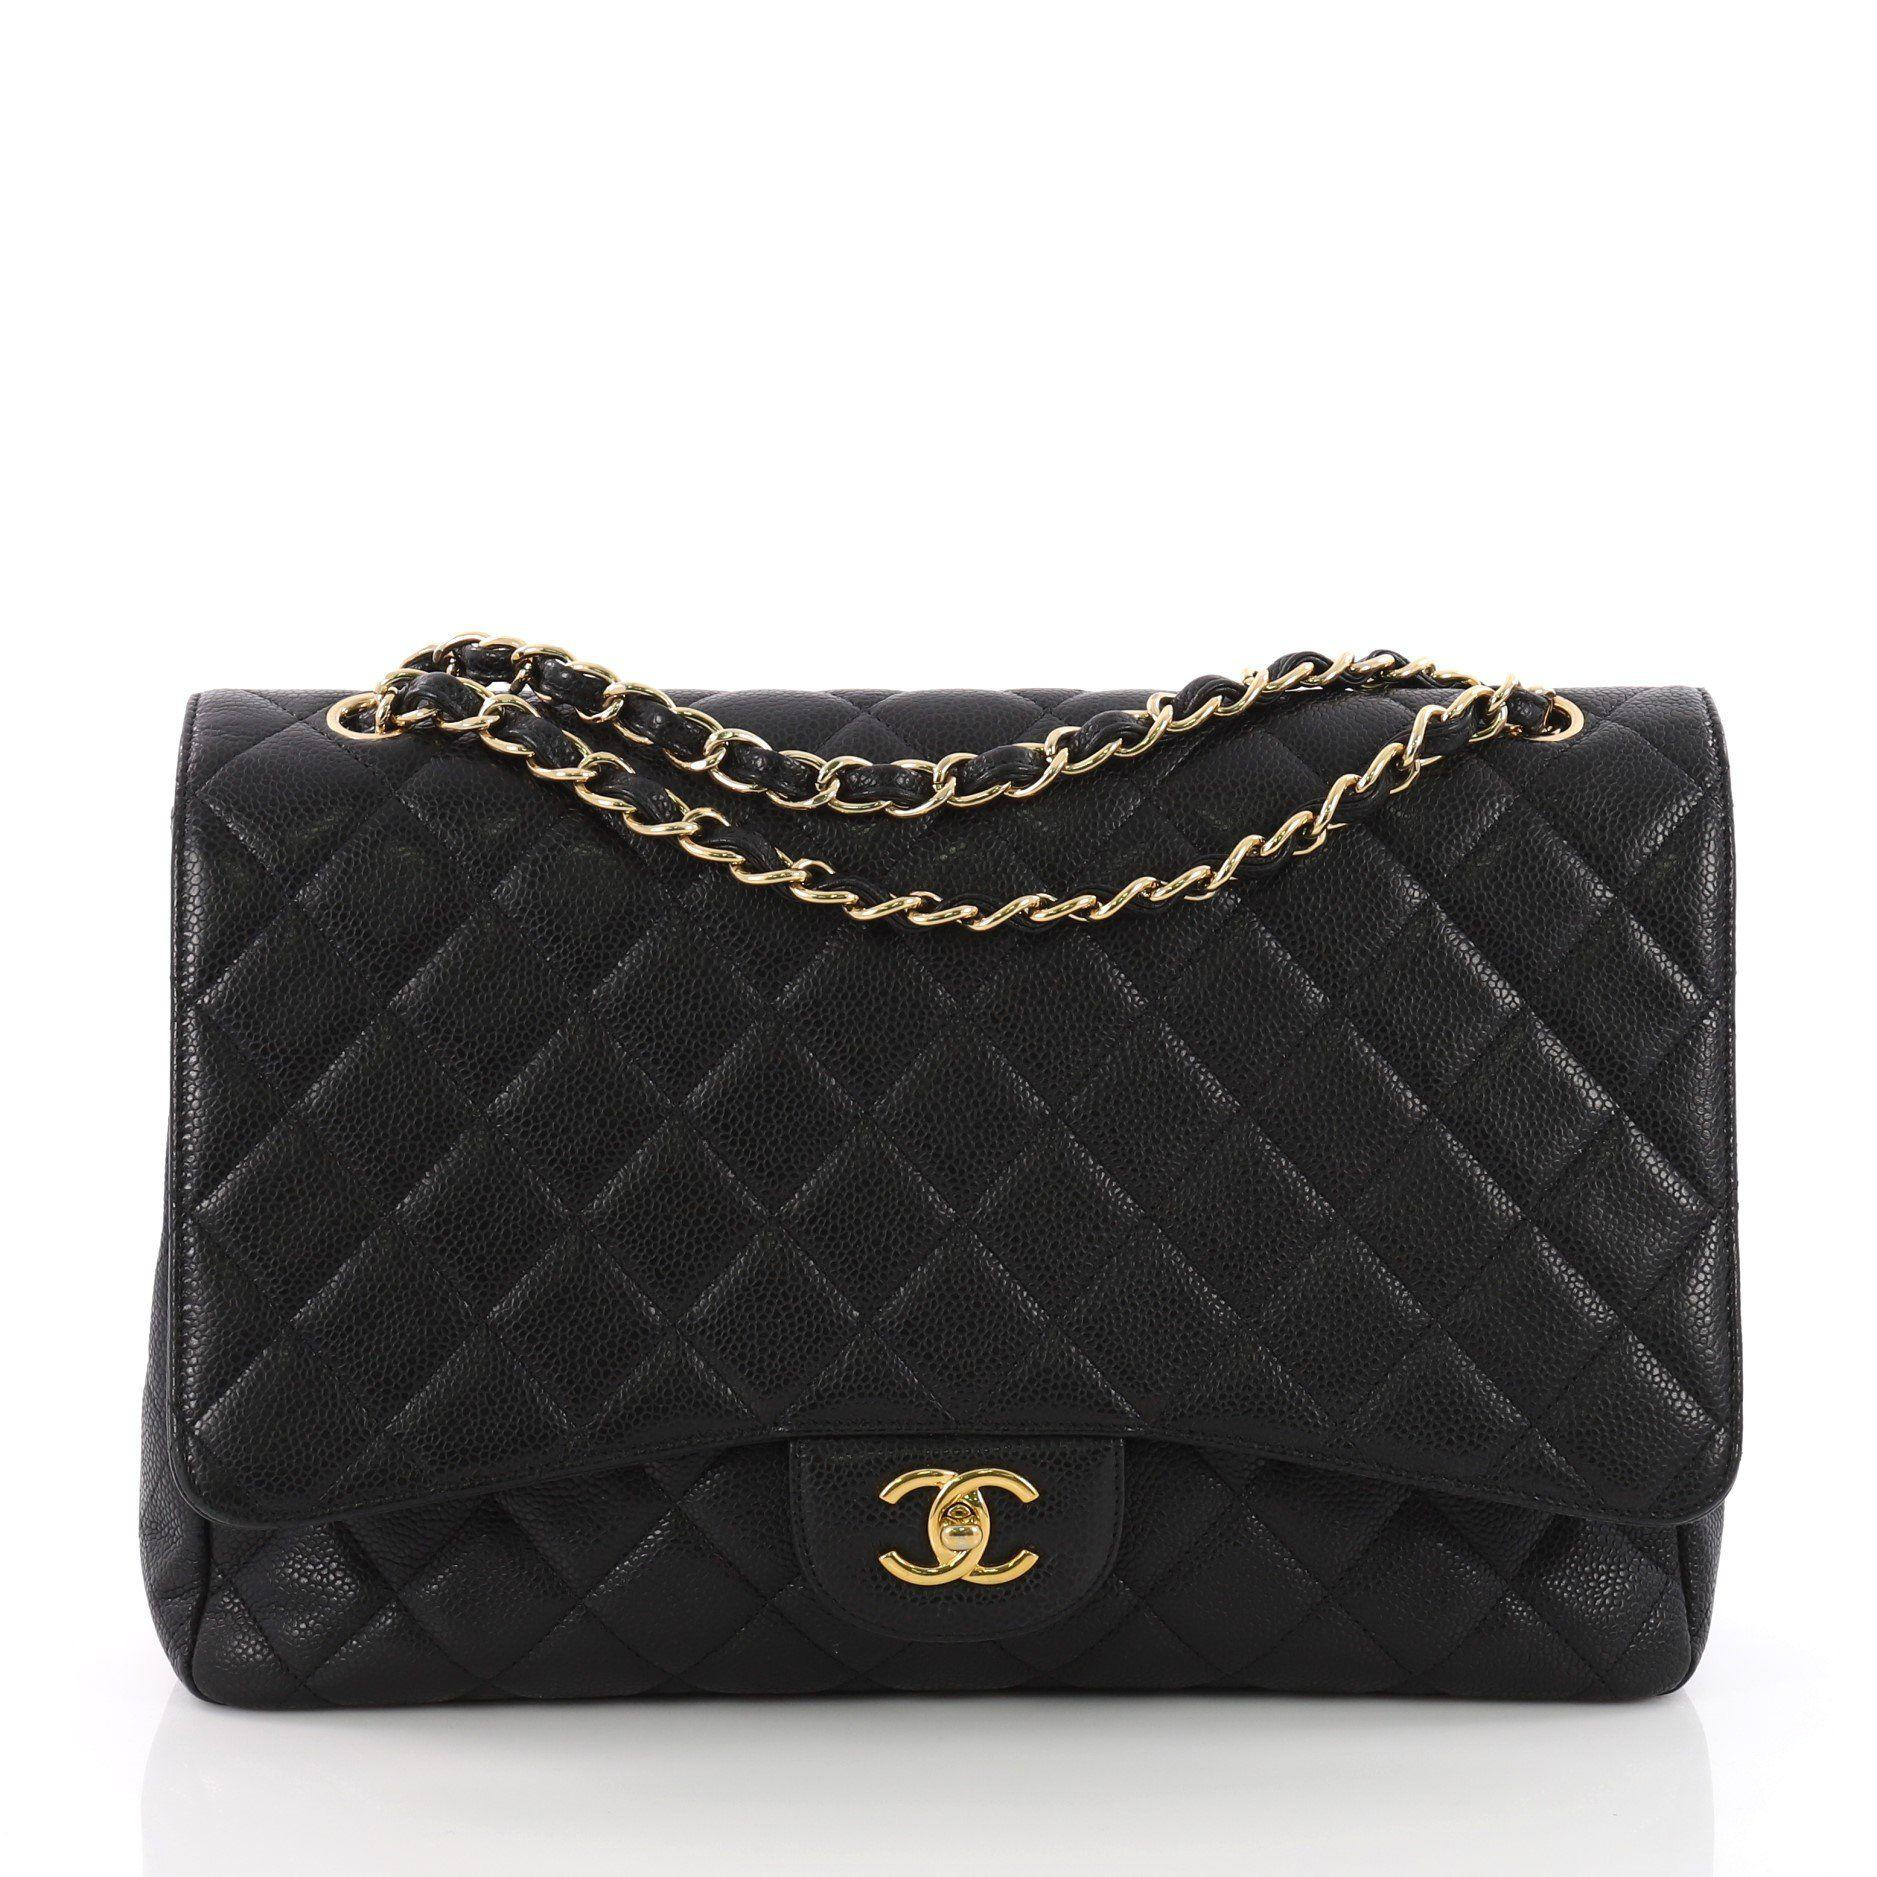 121a5cb78835e3 Lyst - Chanel Pre Owned Classic Single Flap Bag Quilted Caviar Maxi ...